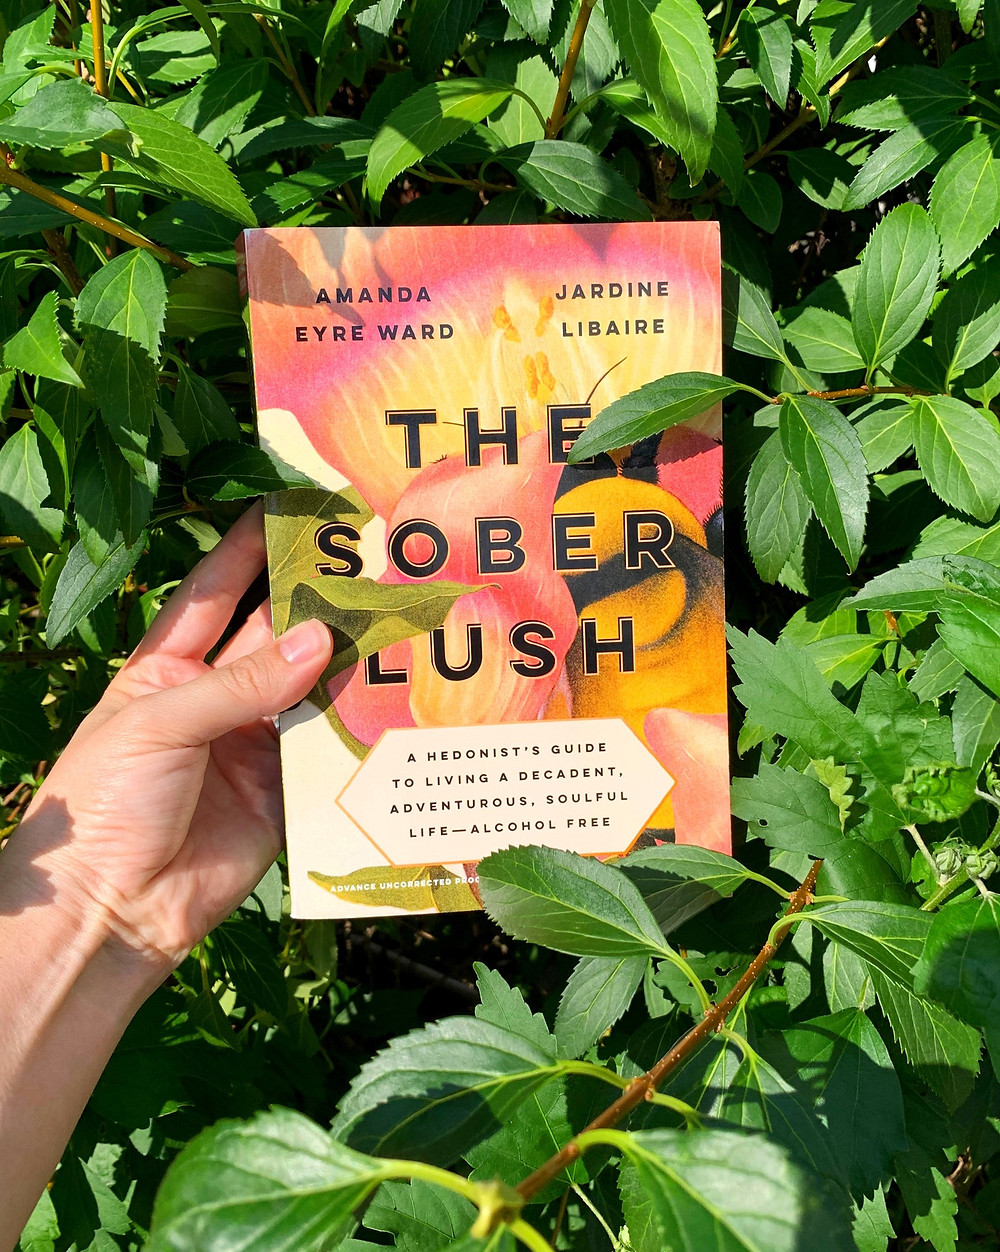 A copy of The Sober Lush is nestled among green leaves, held by a hand in a bush.